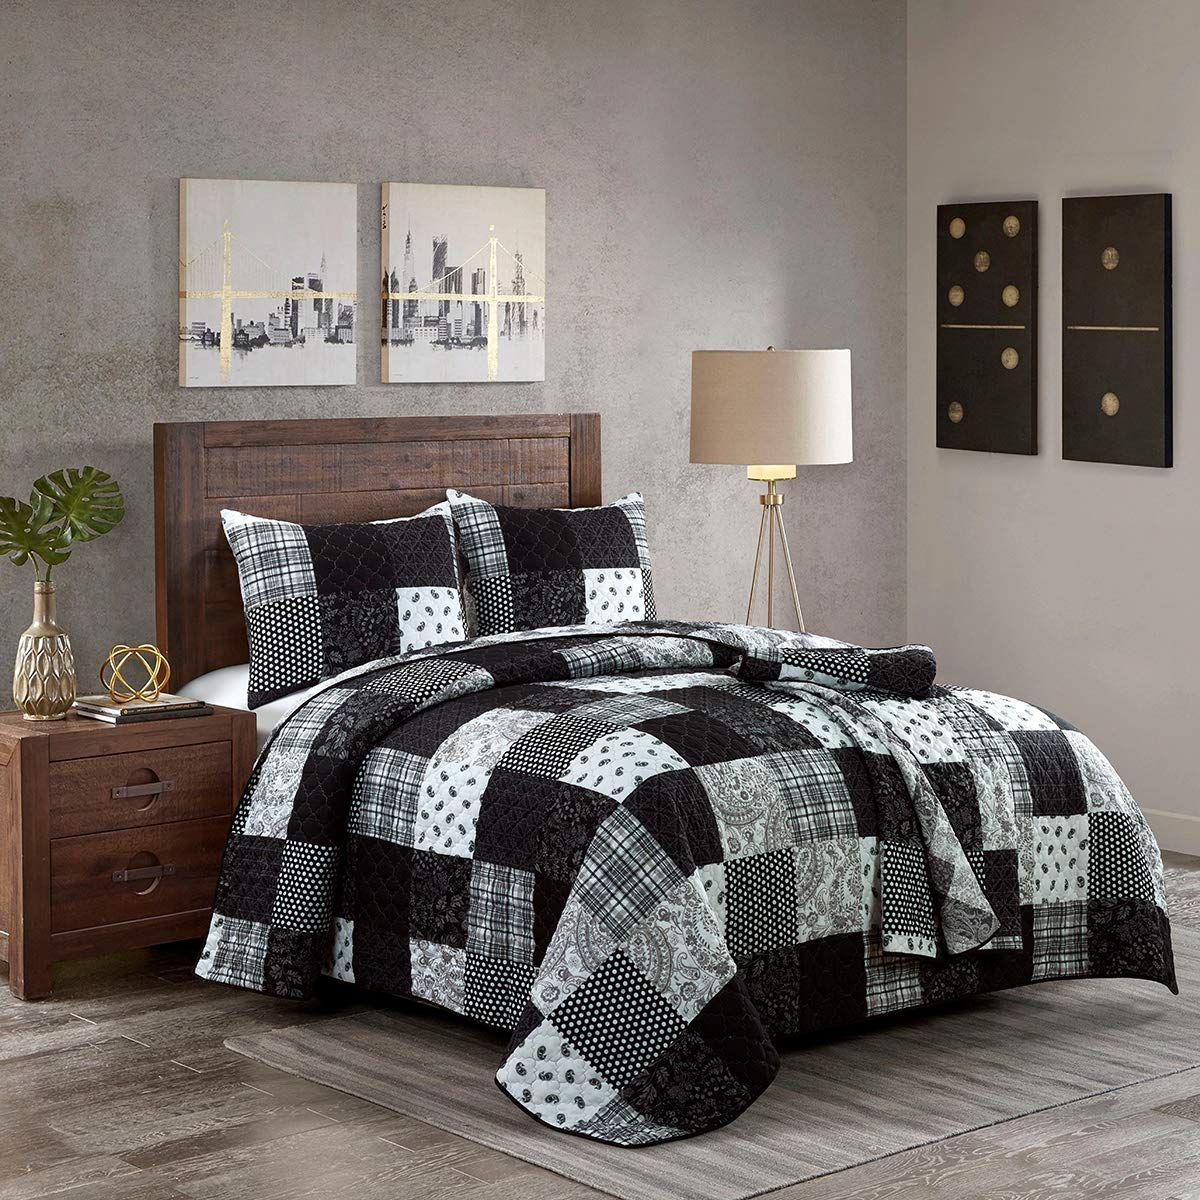 Full/Queen Bedding Set - 3 Piece - London by Donna Sharp - Contemporary Quilt Set with Full/Queen Quilt and Two Standard Pillow Shams - Fits Queen Size and Full Size Beds - Machine Washable